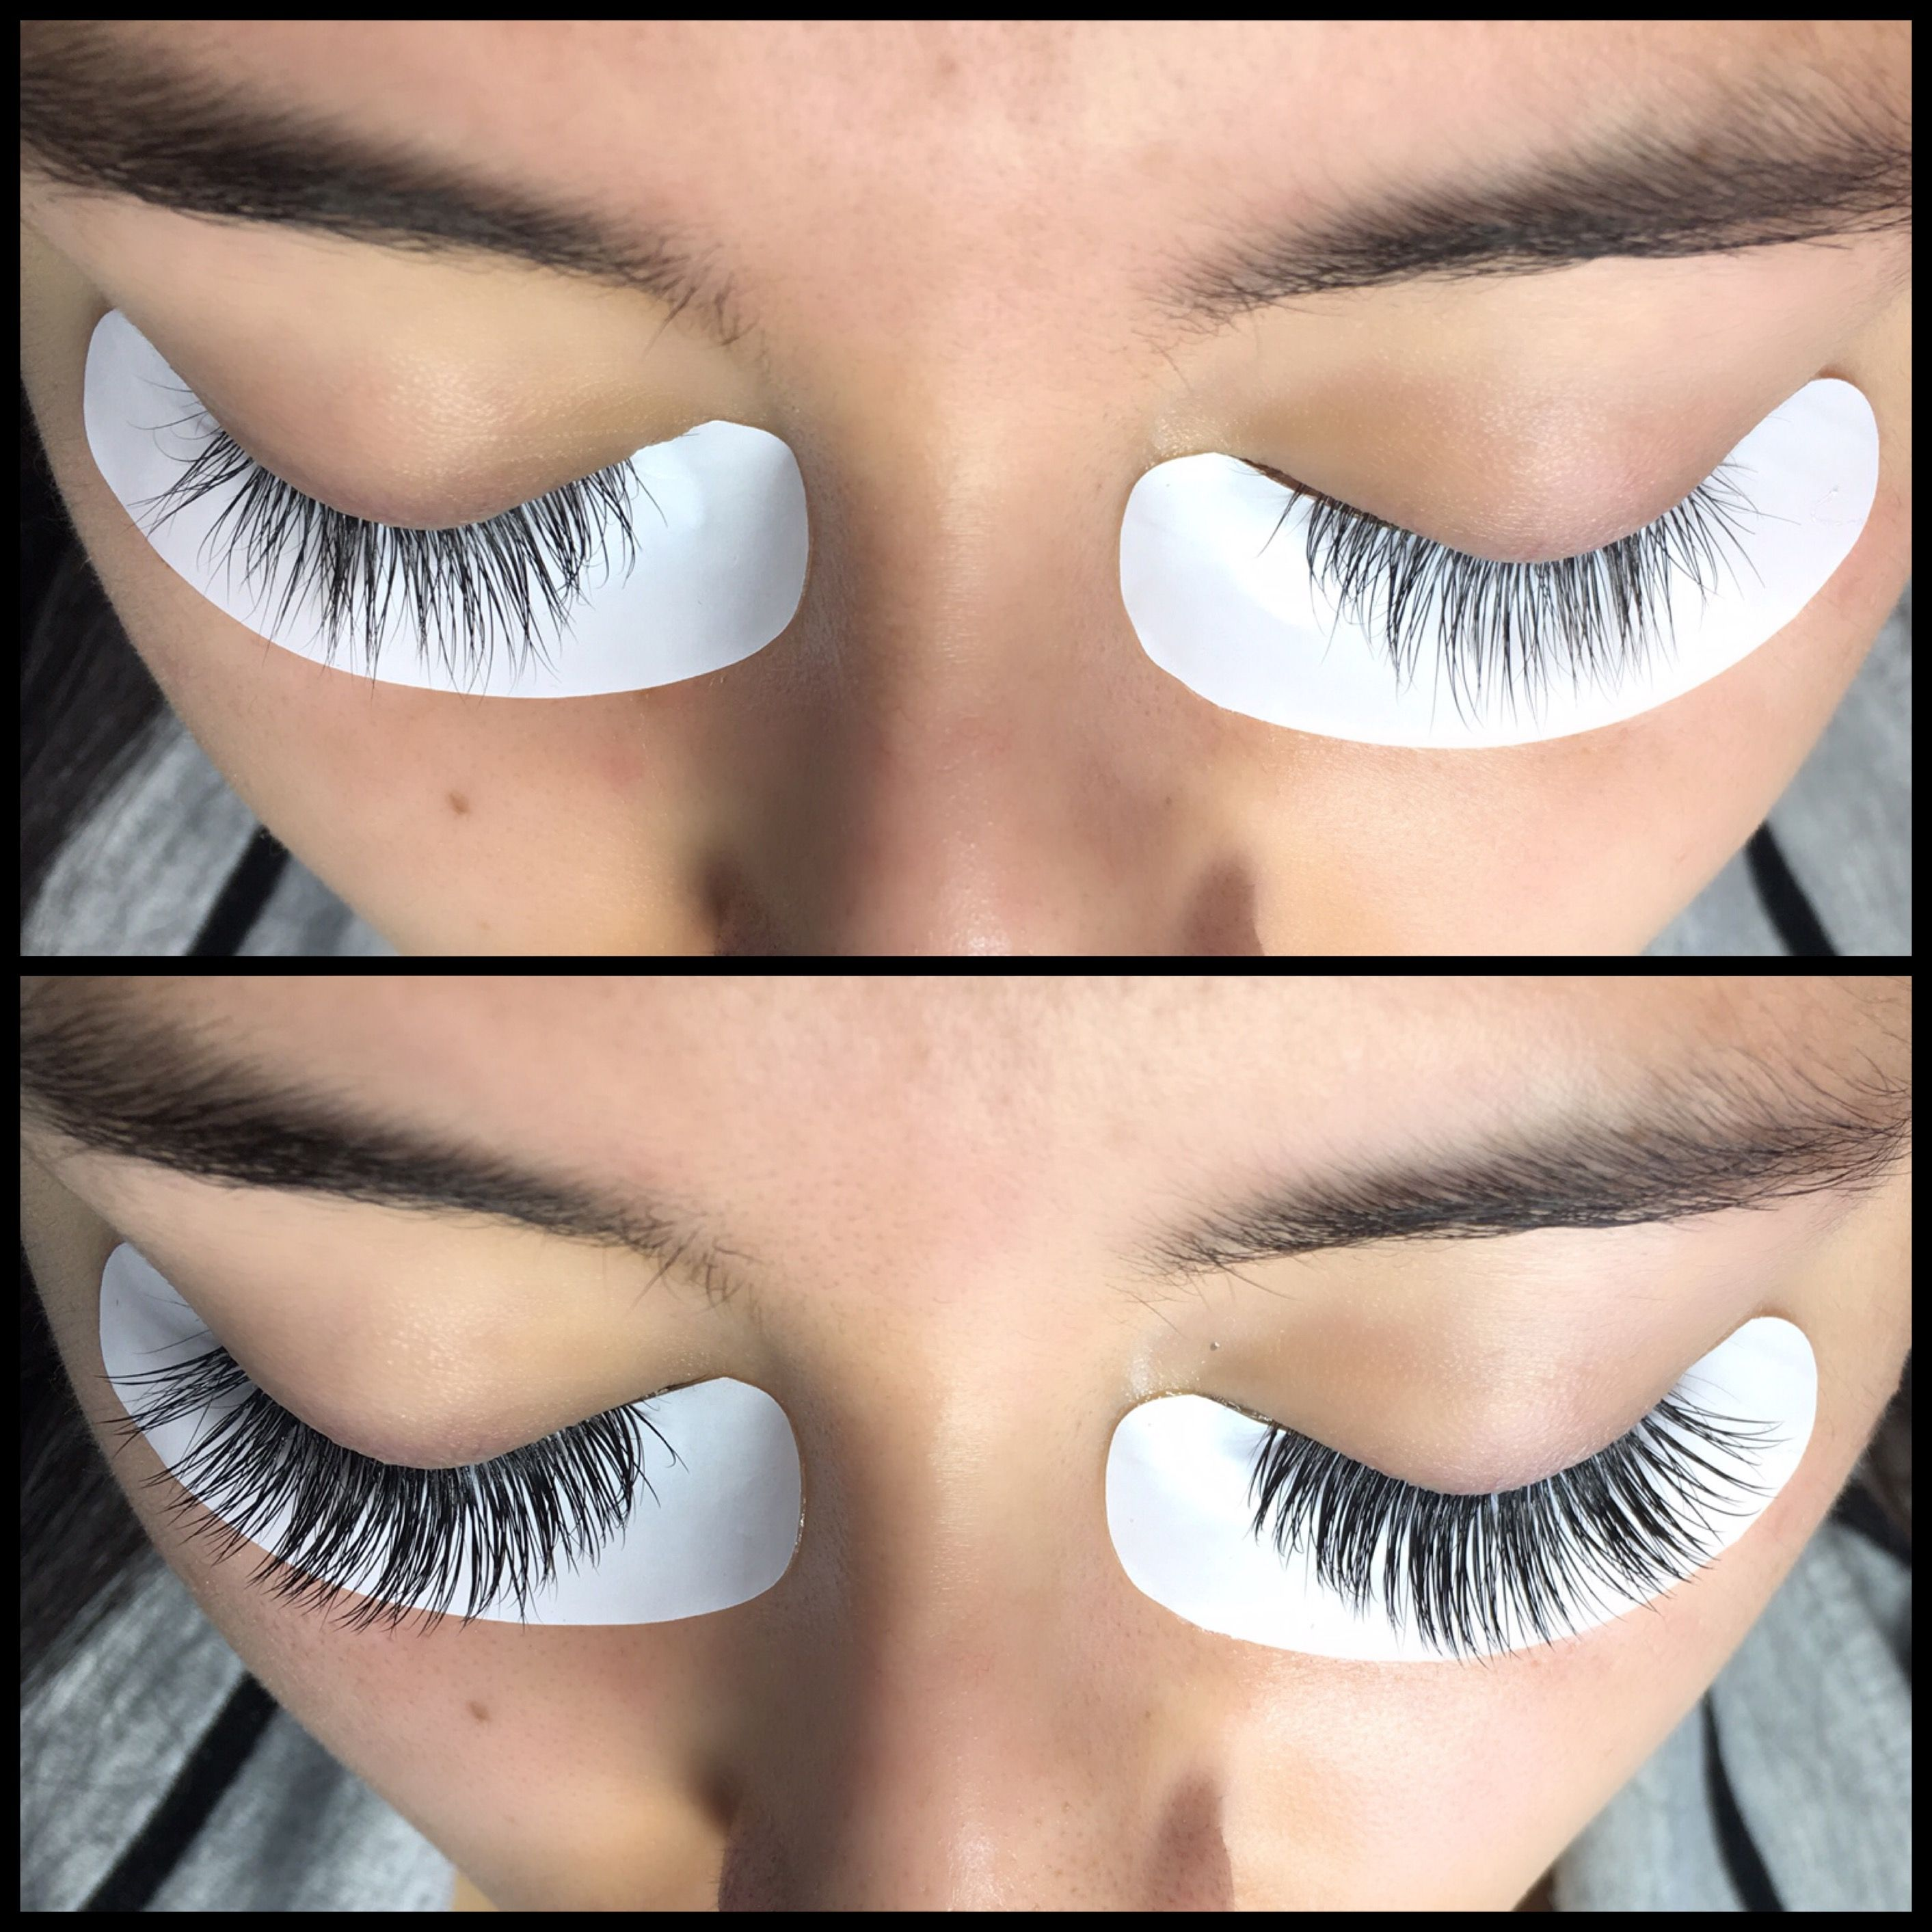 6bcae9c1477 Before + After of classic lash extensions | Lash101 in 2019 ...